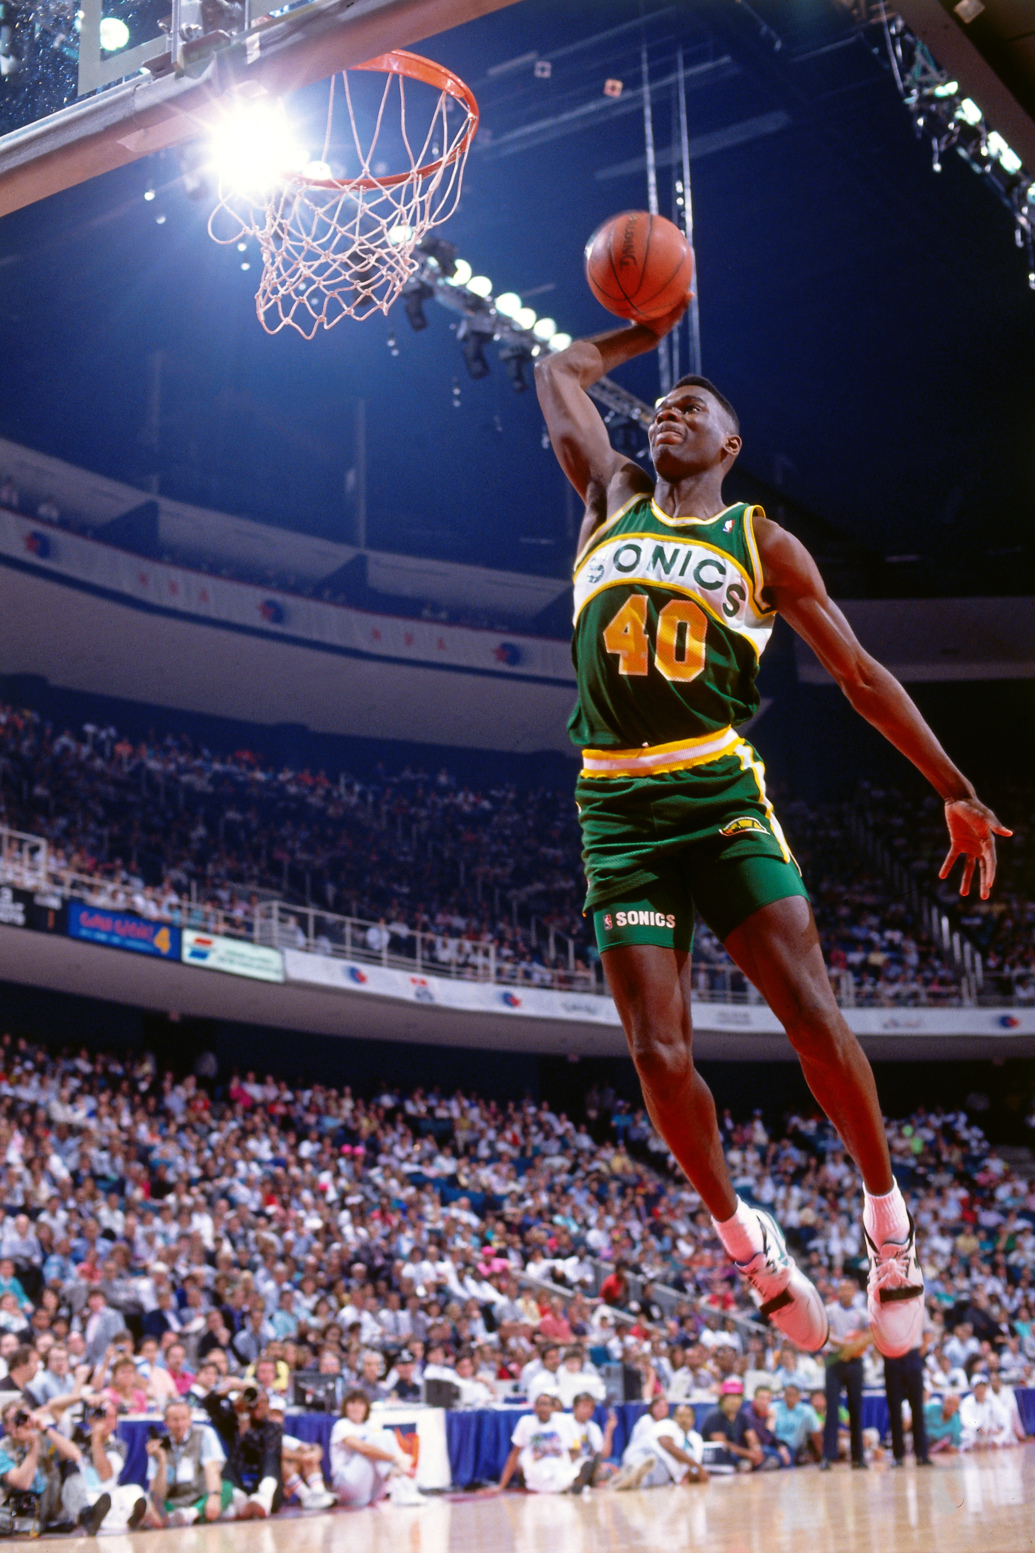 a recollection of my experience during the disappointing seattle supersonic game against utah jazz It has been three years since sonics moved from seattle to oklahoma and became oklahoma city thunder those of us that watched the sonics during the 90s miss them and i believe that everyone would want the sonics to return to seattle.